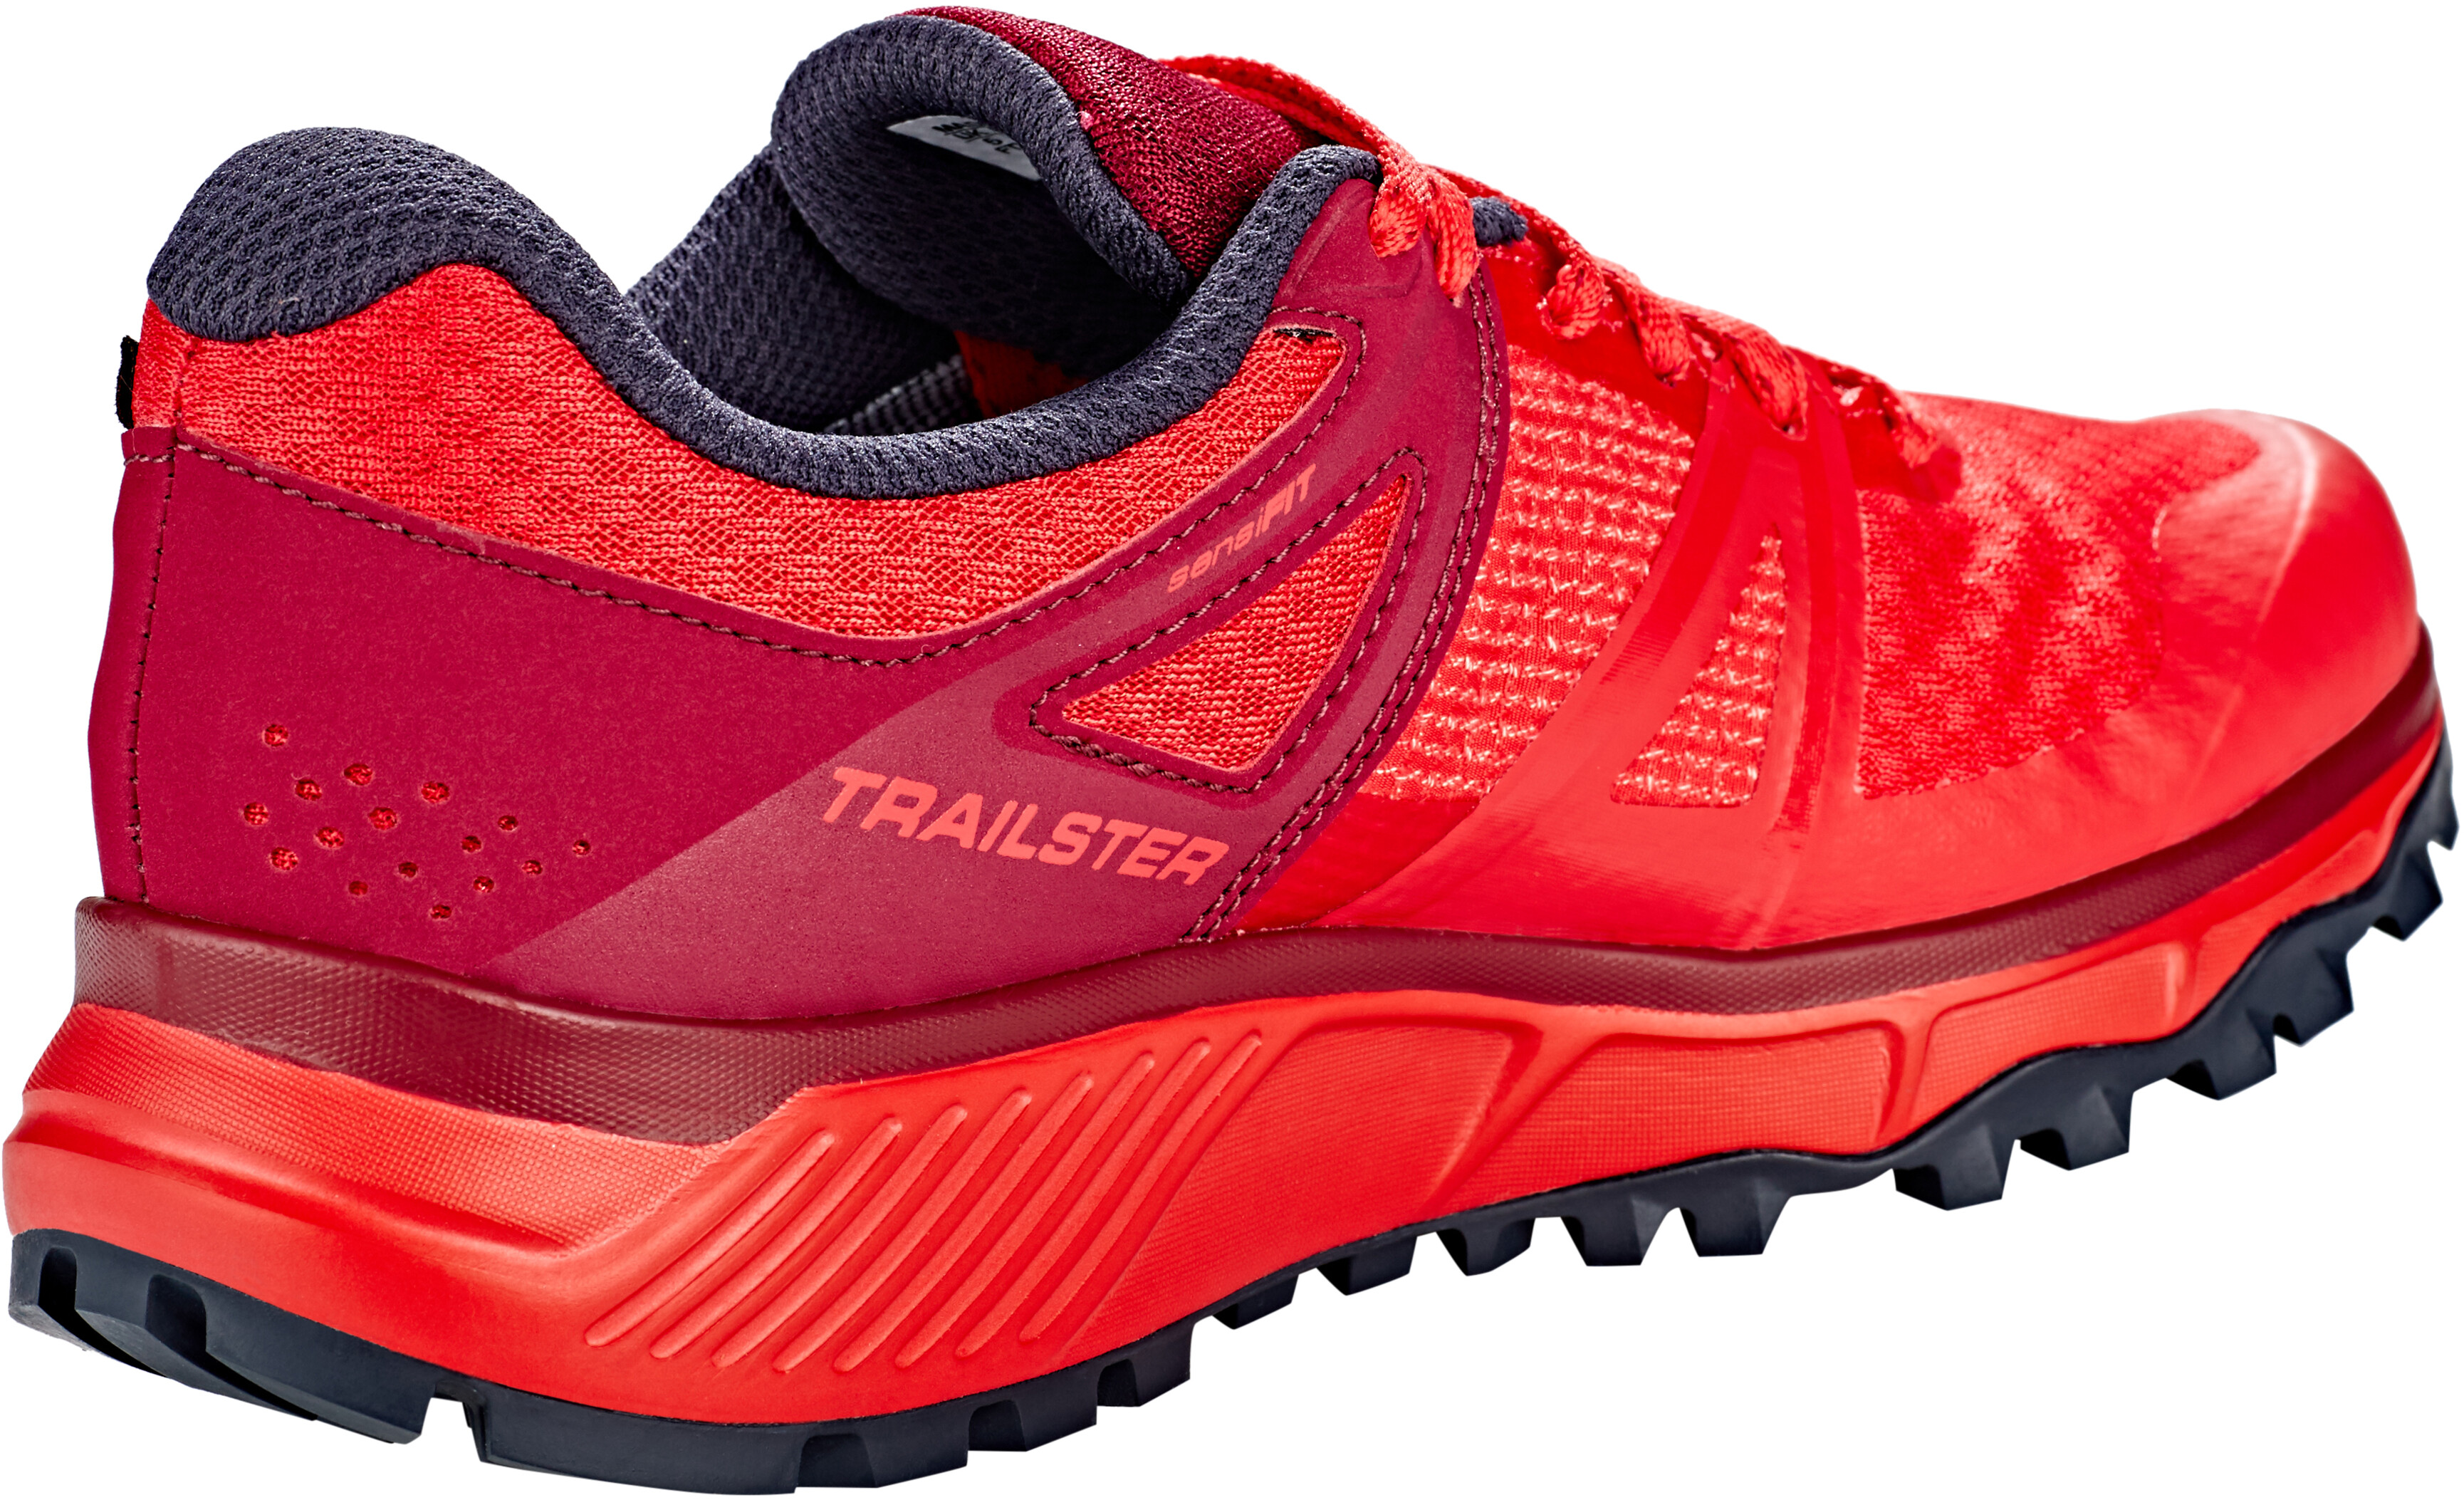 check out 2707e b4e0f Salomon Trailster GTX - Chaussures running Femme - rouge